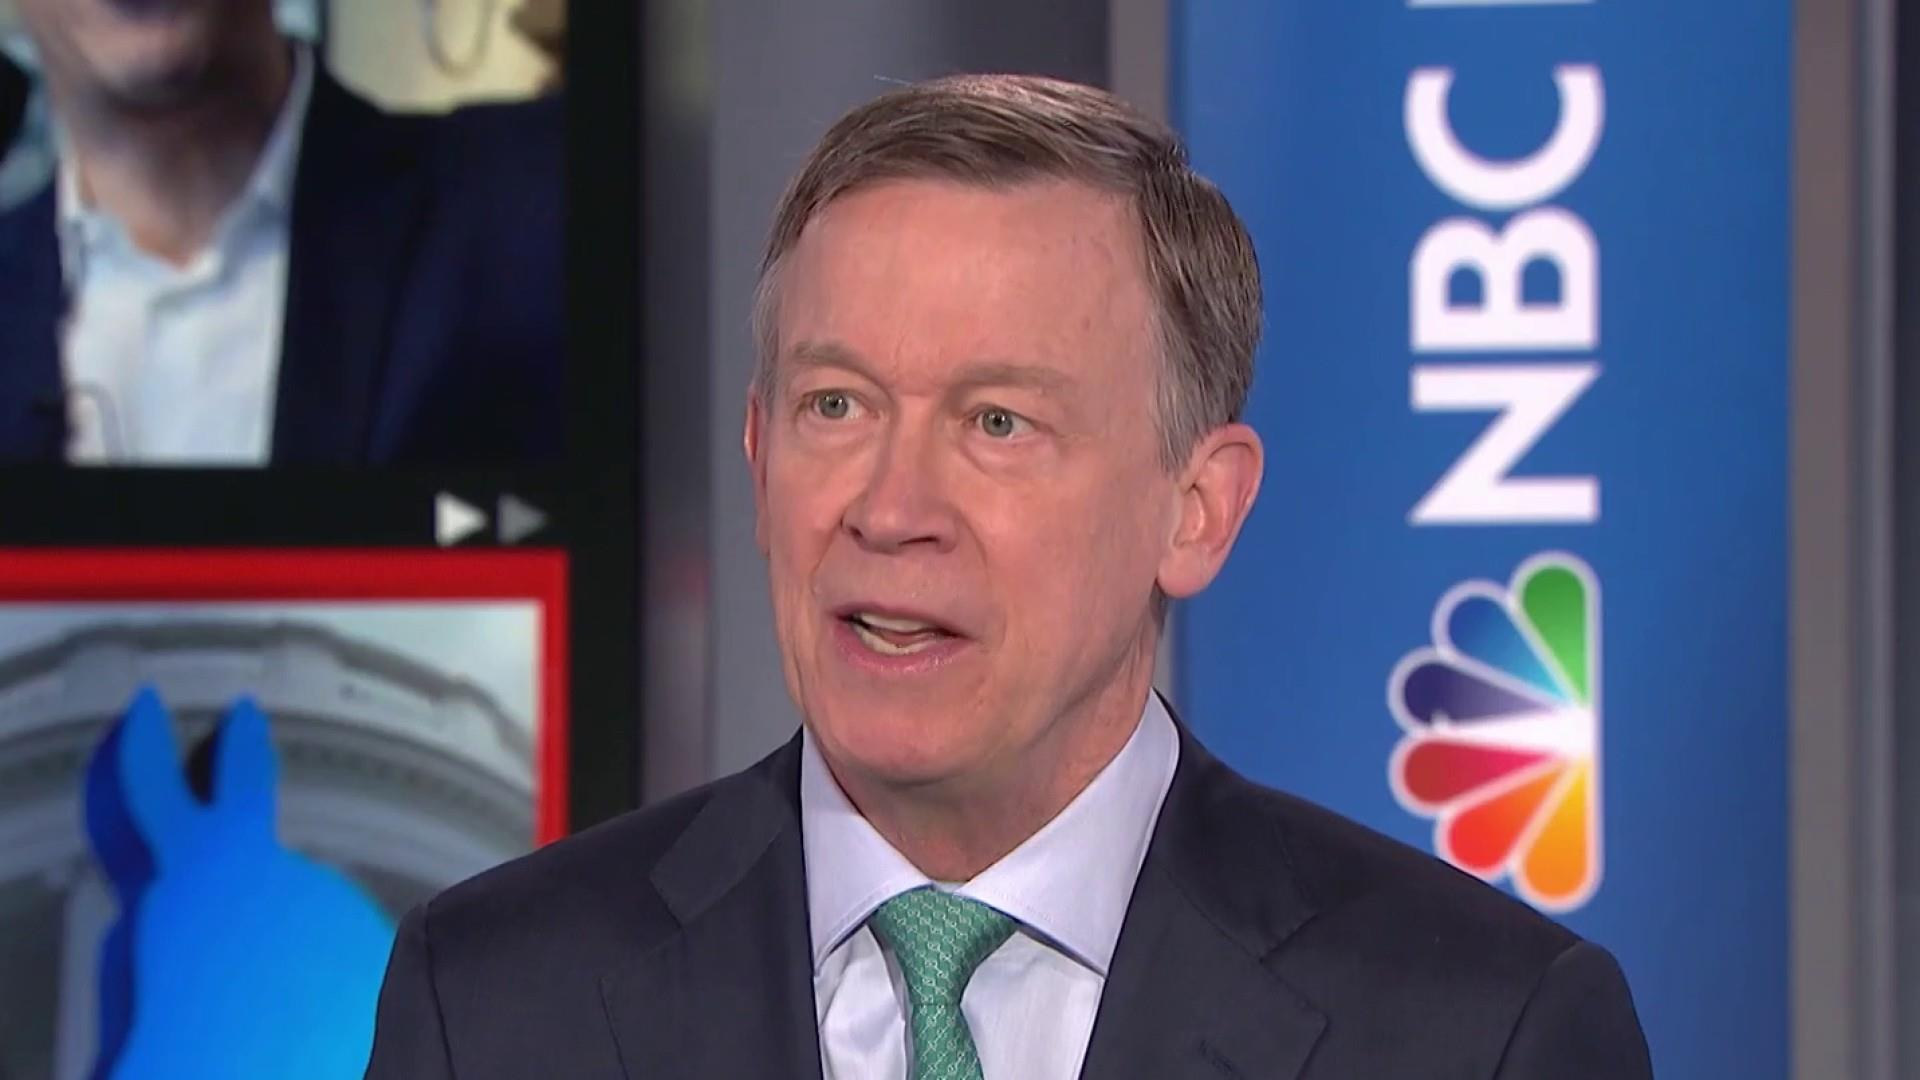 2020 contender Fmr. Gov. Hickenlooper on China, Mueller, capitalism